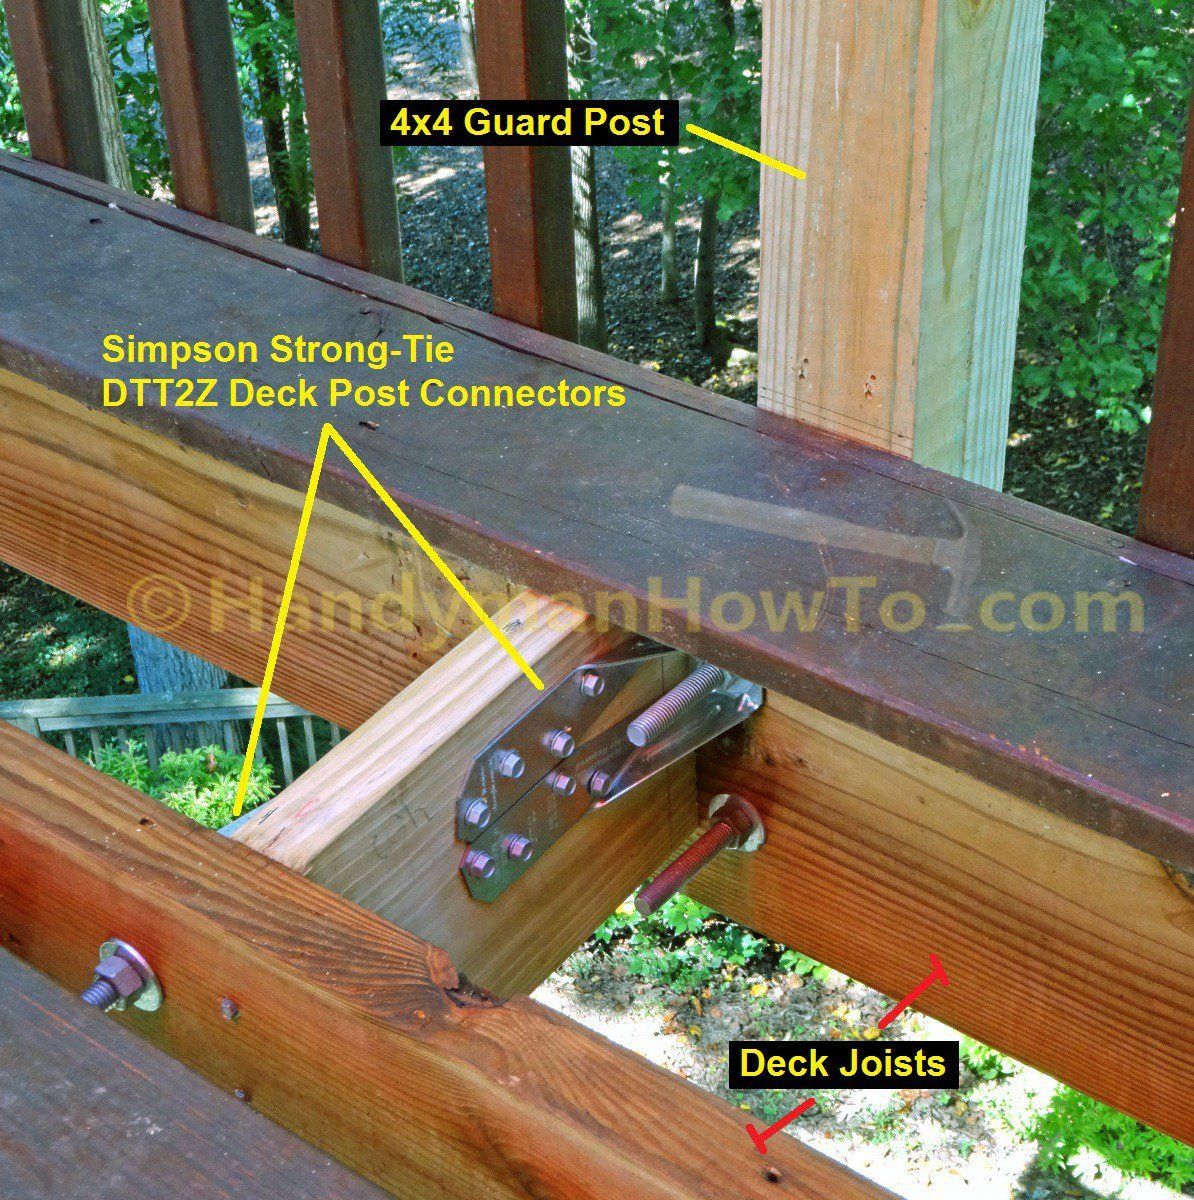 Code Requirements For Decks: How To Build Code Compliant Deck Railing: The Old Deck